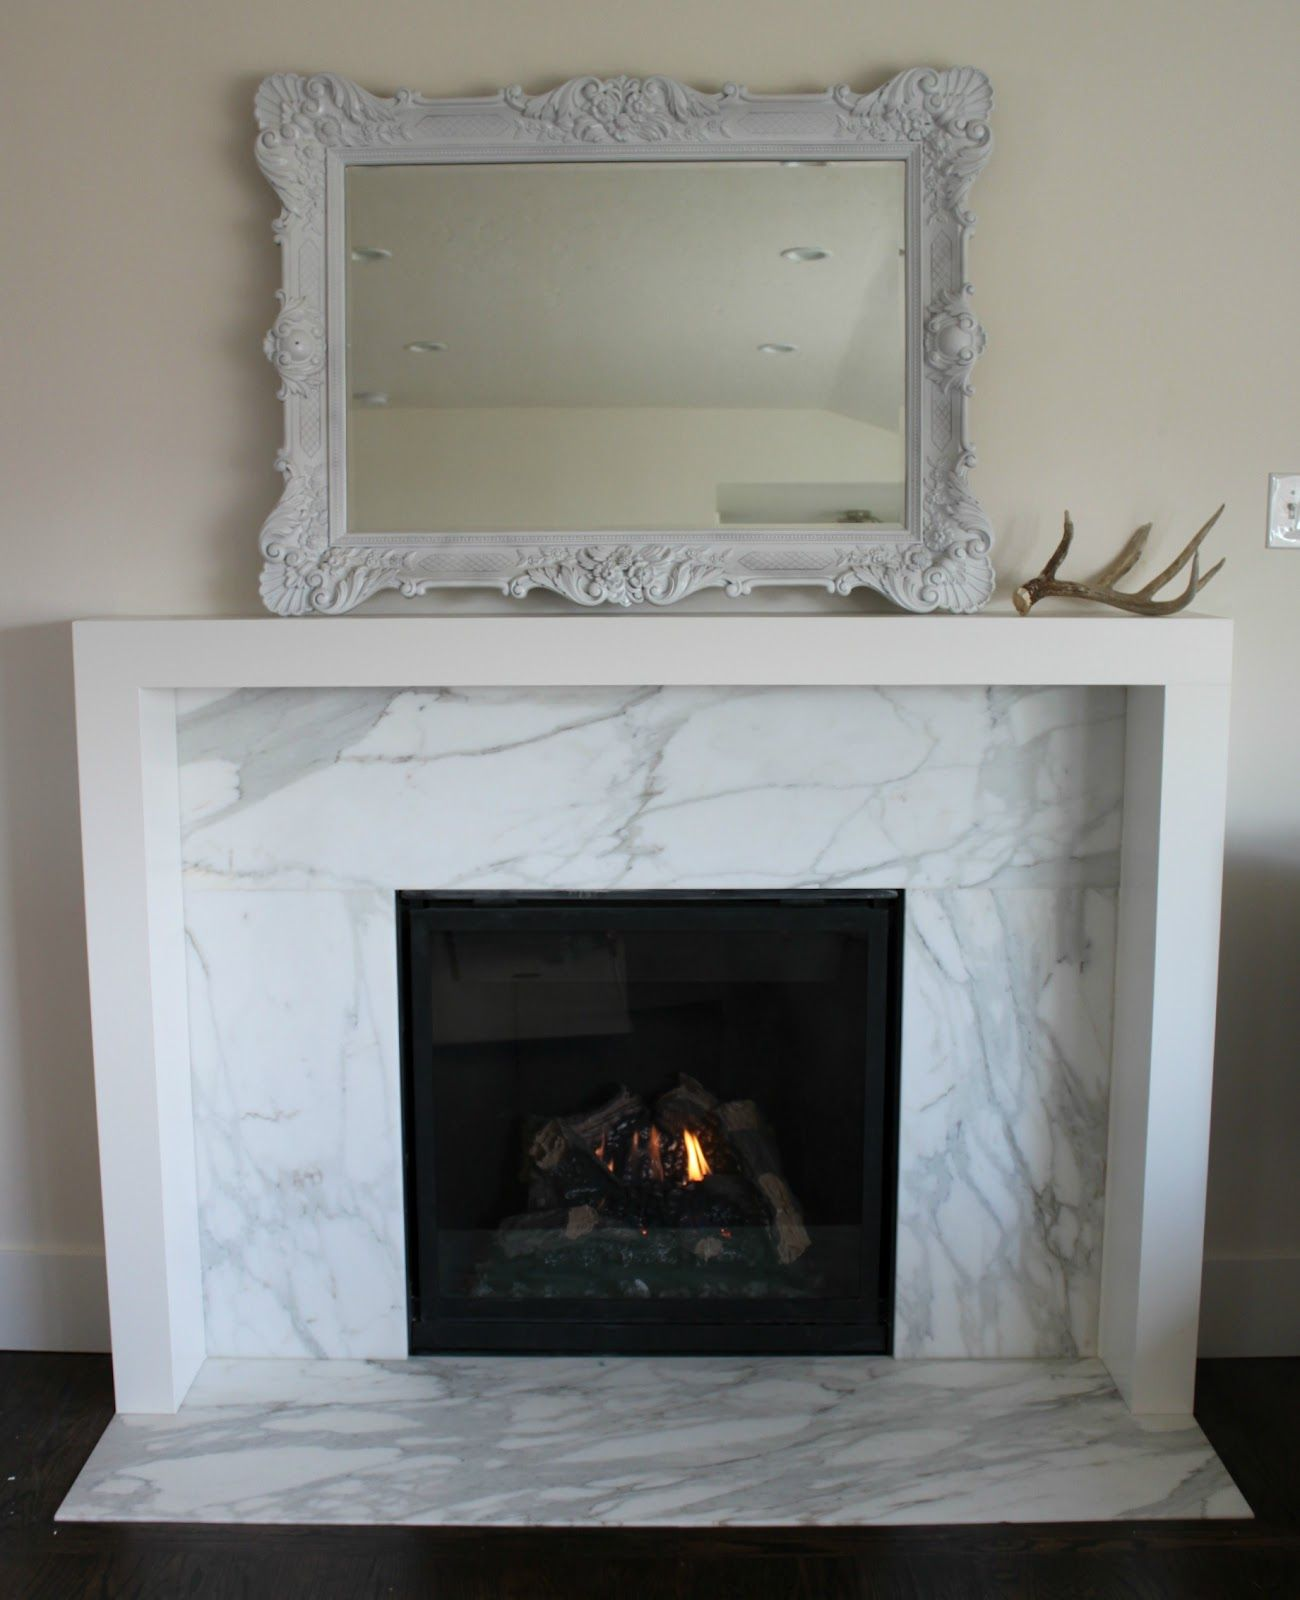 Take The Mantle All The Way Around No More Floating Mantles Marble Fireplace Surround Modern Fireplace Contemporary Fireplace